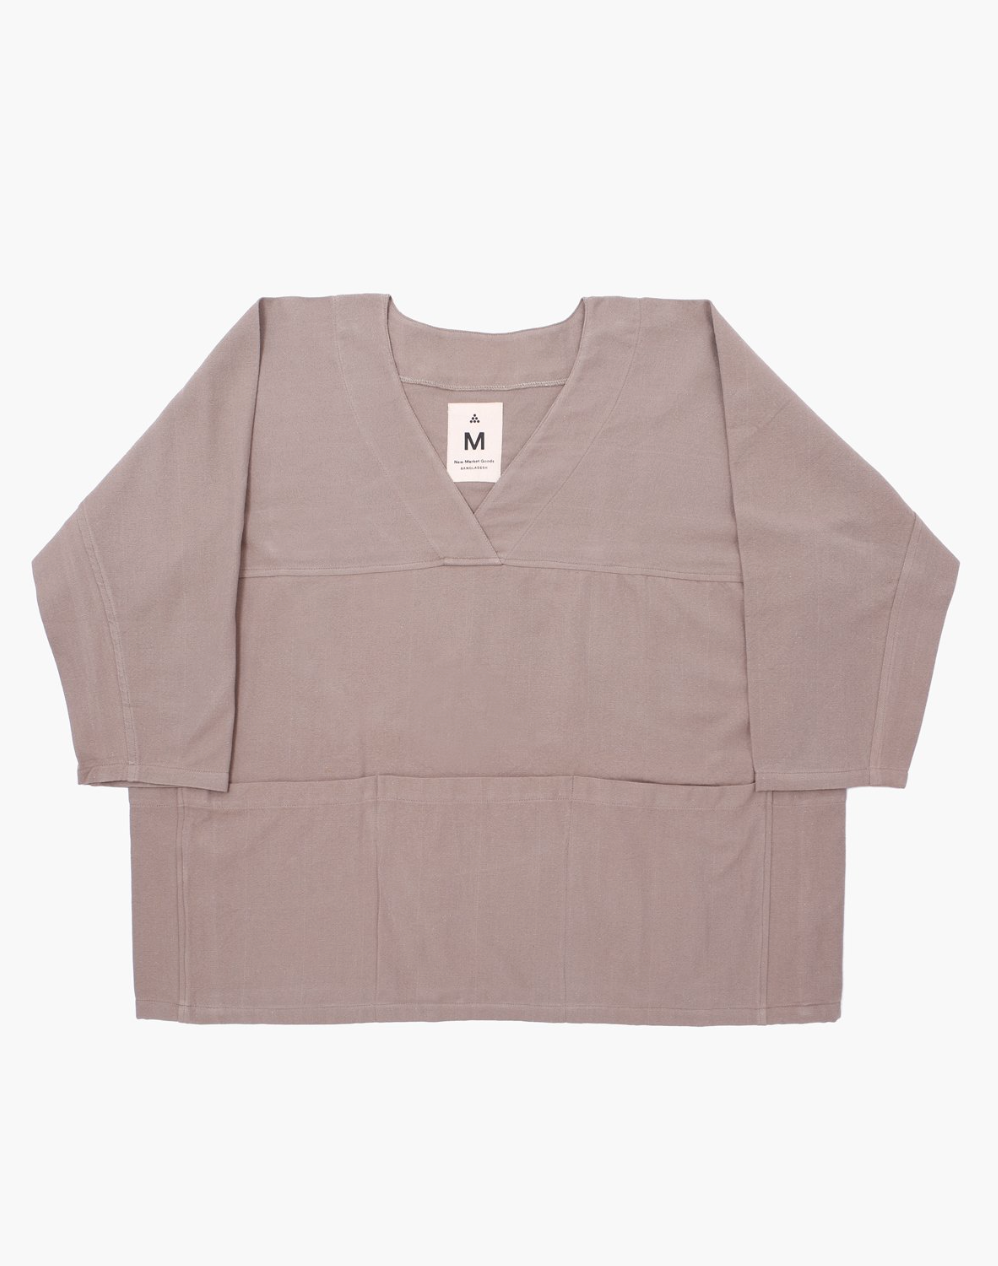 GRAY CANVAS POCKET SMOCK - NEW MARKET GOODS